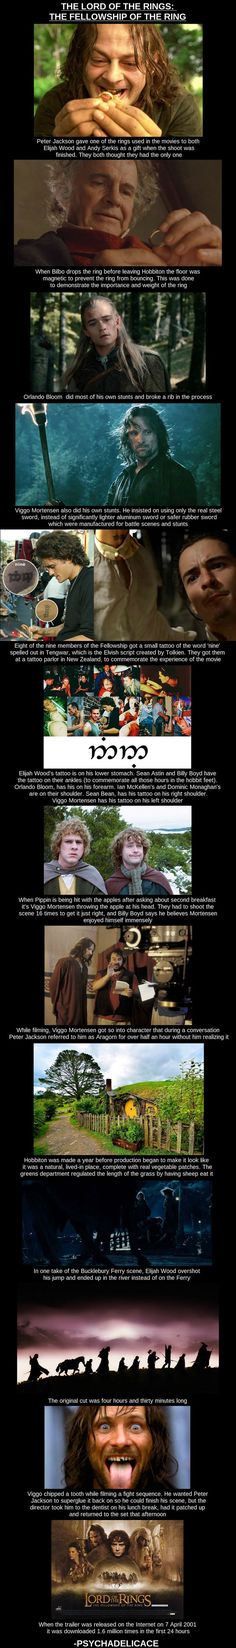 'The Fellowship Of The Ring' behind the scenes facts.